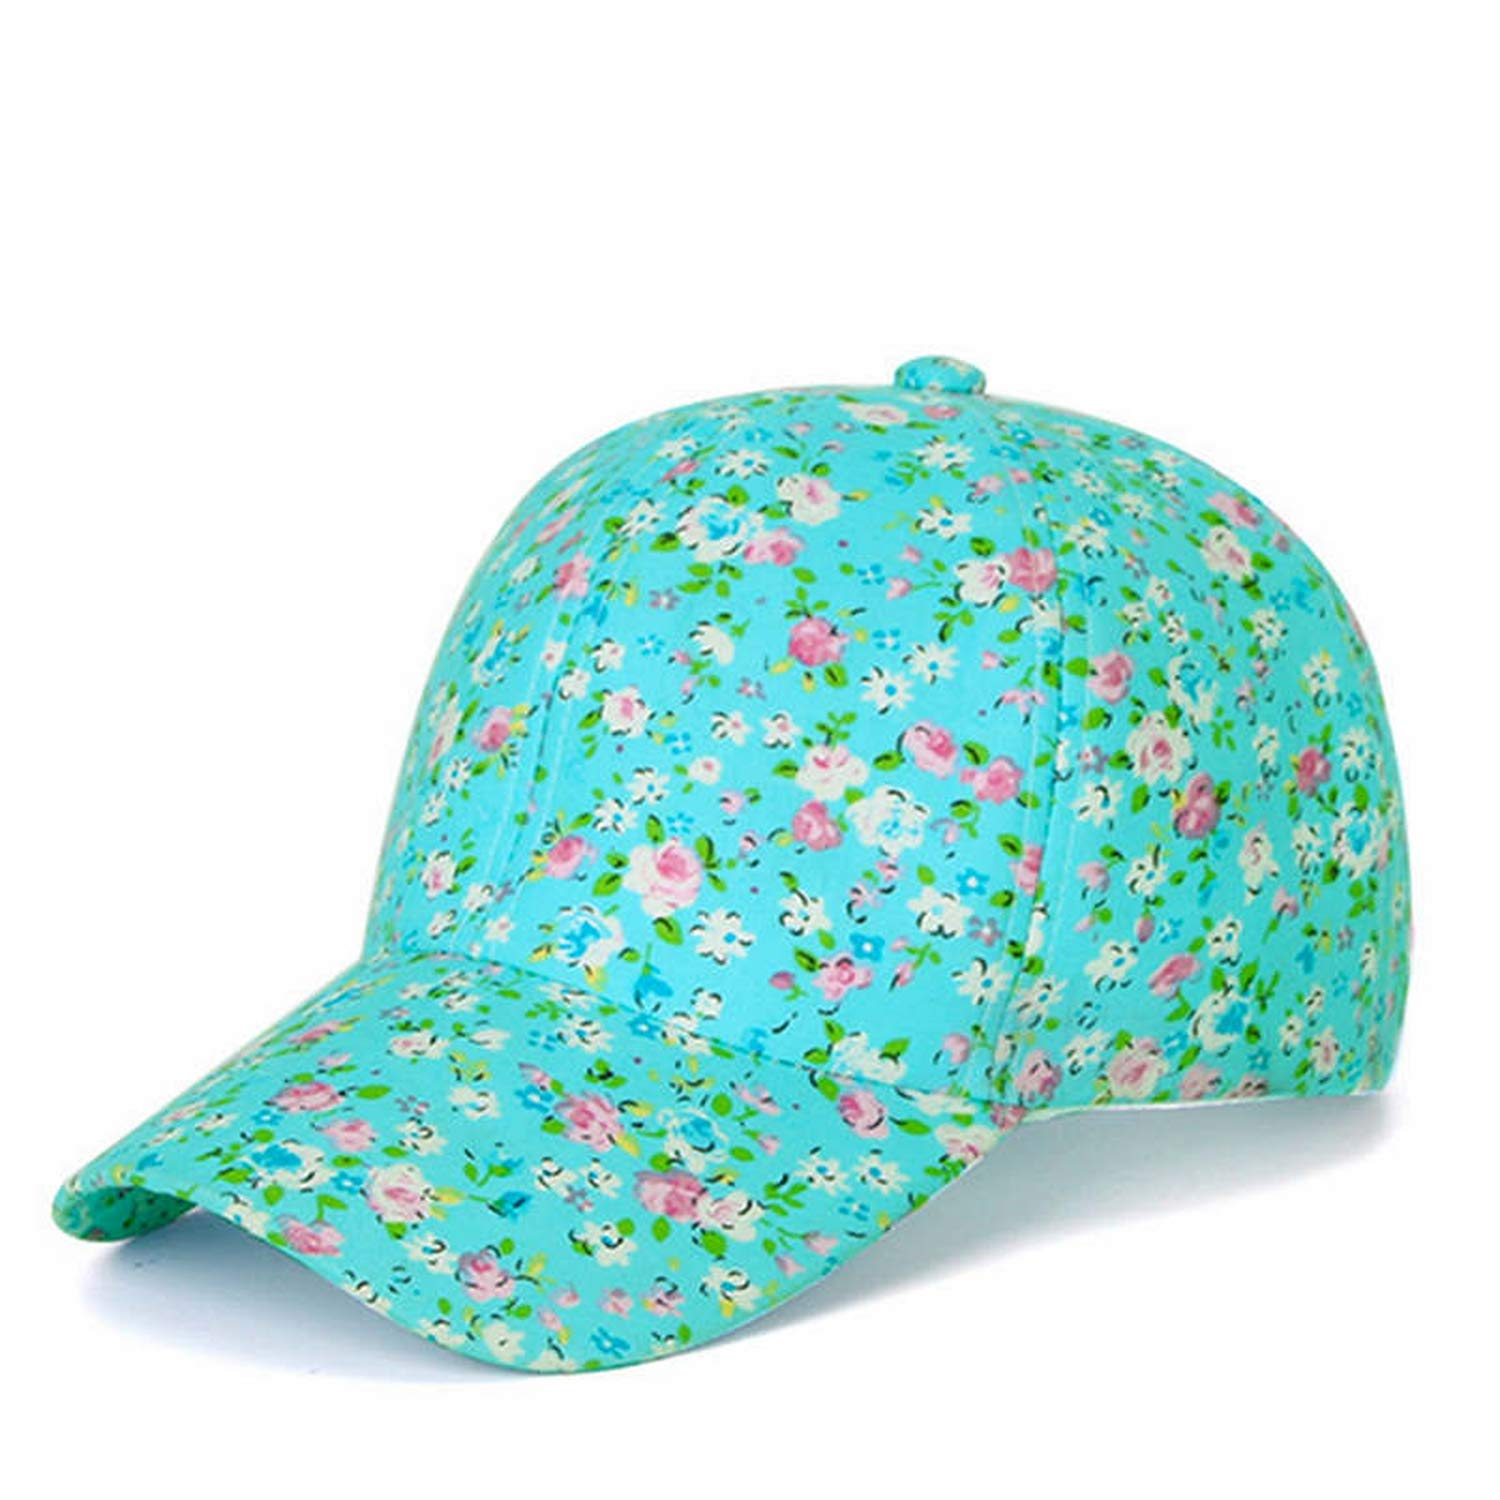 Hawoody Fashion Summer Baseball caps Women Casual Cap Ladies Lovely Summer hat Casquette Bone Femme Gorras para Mujer Blue at Amazon Womens Clothing store: